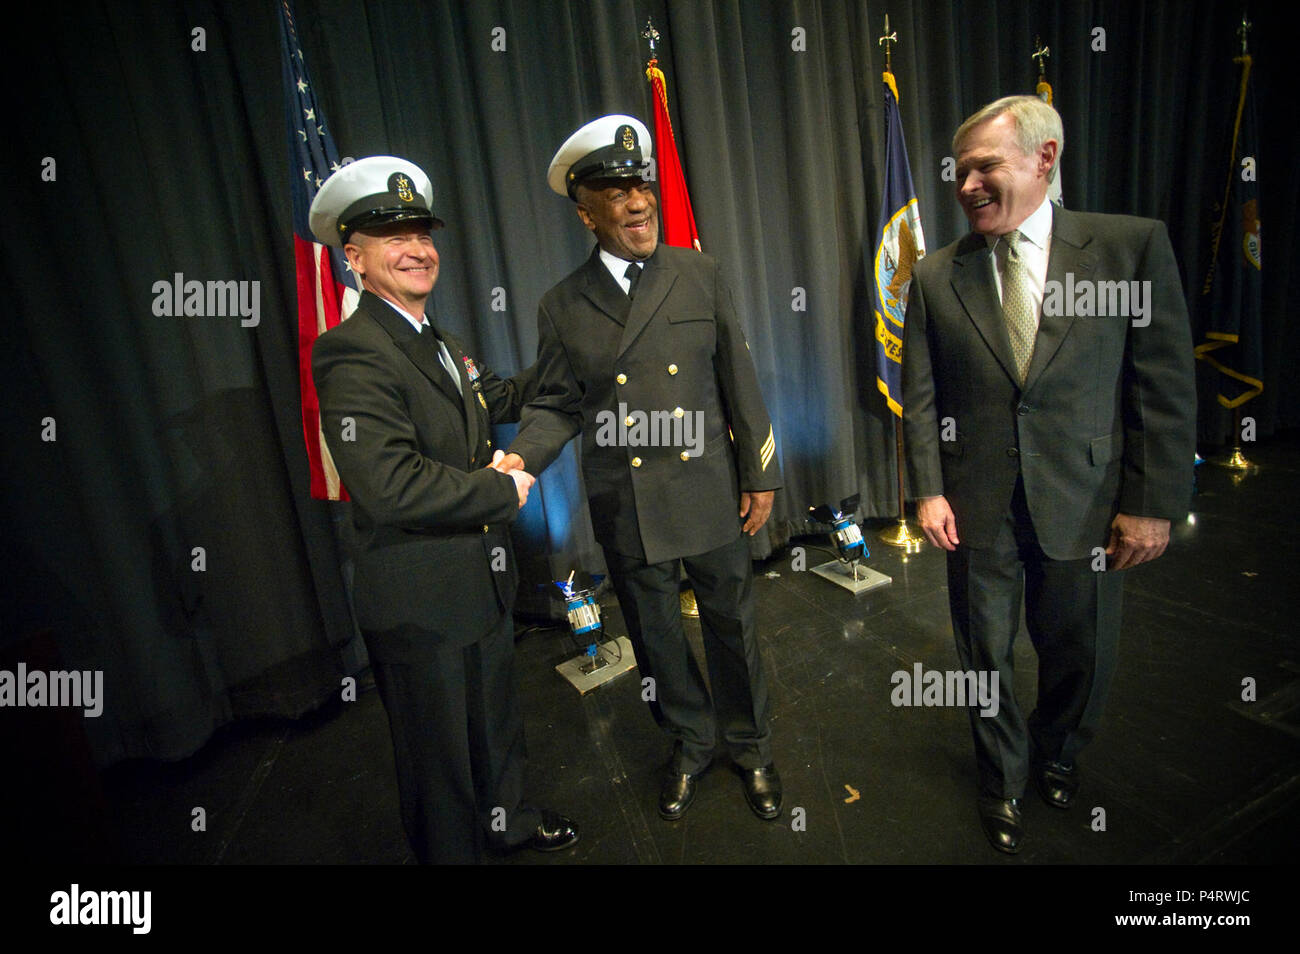 Master Chief Petty Officer of the Navy Rick West, left, and Secretary of the Navy Ray Mabus congratulate Honorary Chief Hospital Corpsman Bill Cosby, center, during his pinning ceremony at the Navy Memorial in Washington, D.C., Feb. 17, 2011. (DoD Stock Photo